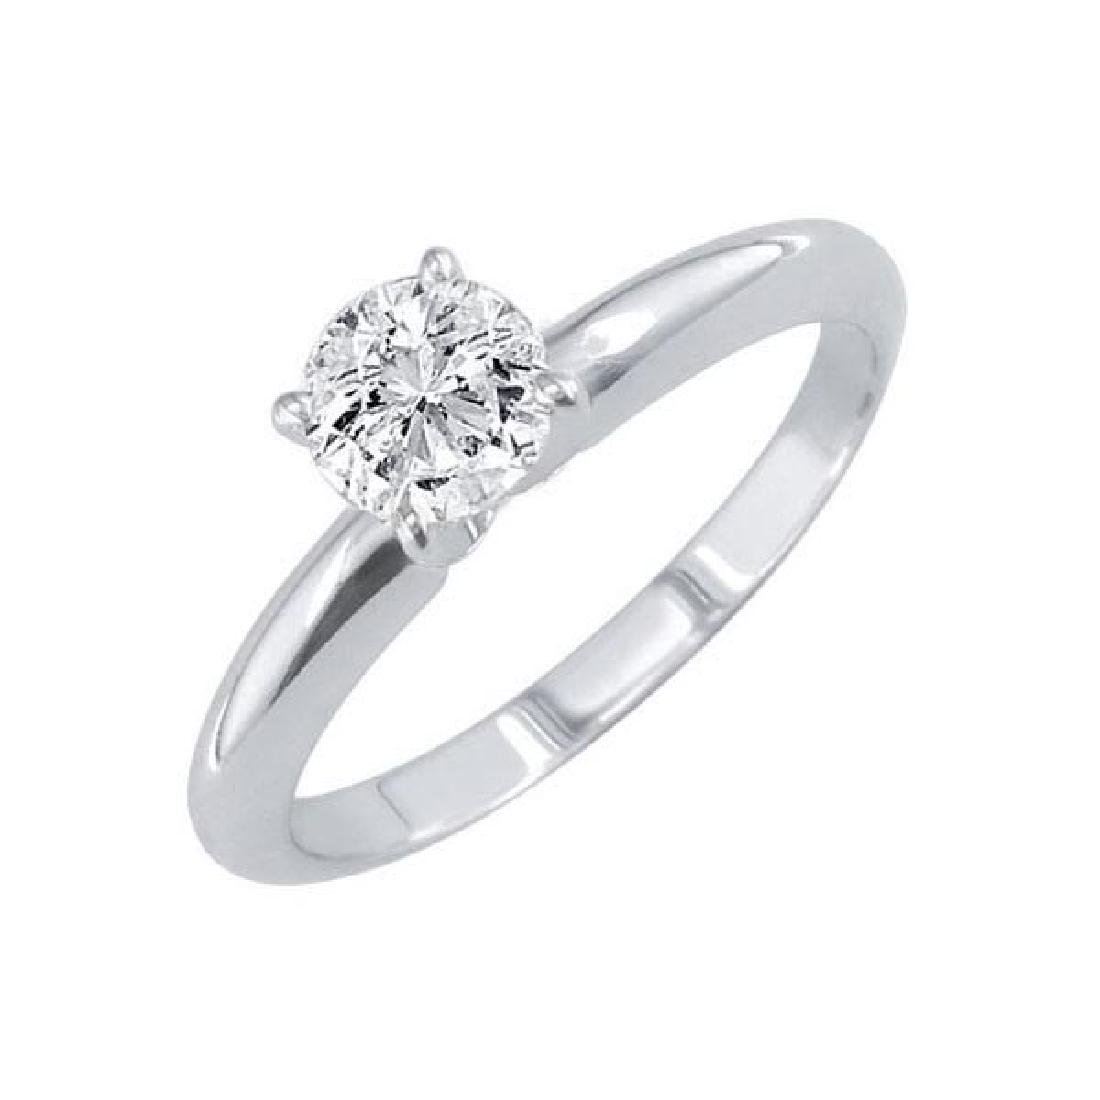 Certified 1.22 CTW Round Diamond Solitaire 14k Ring E/I